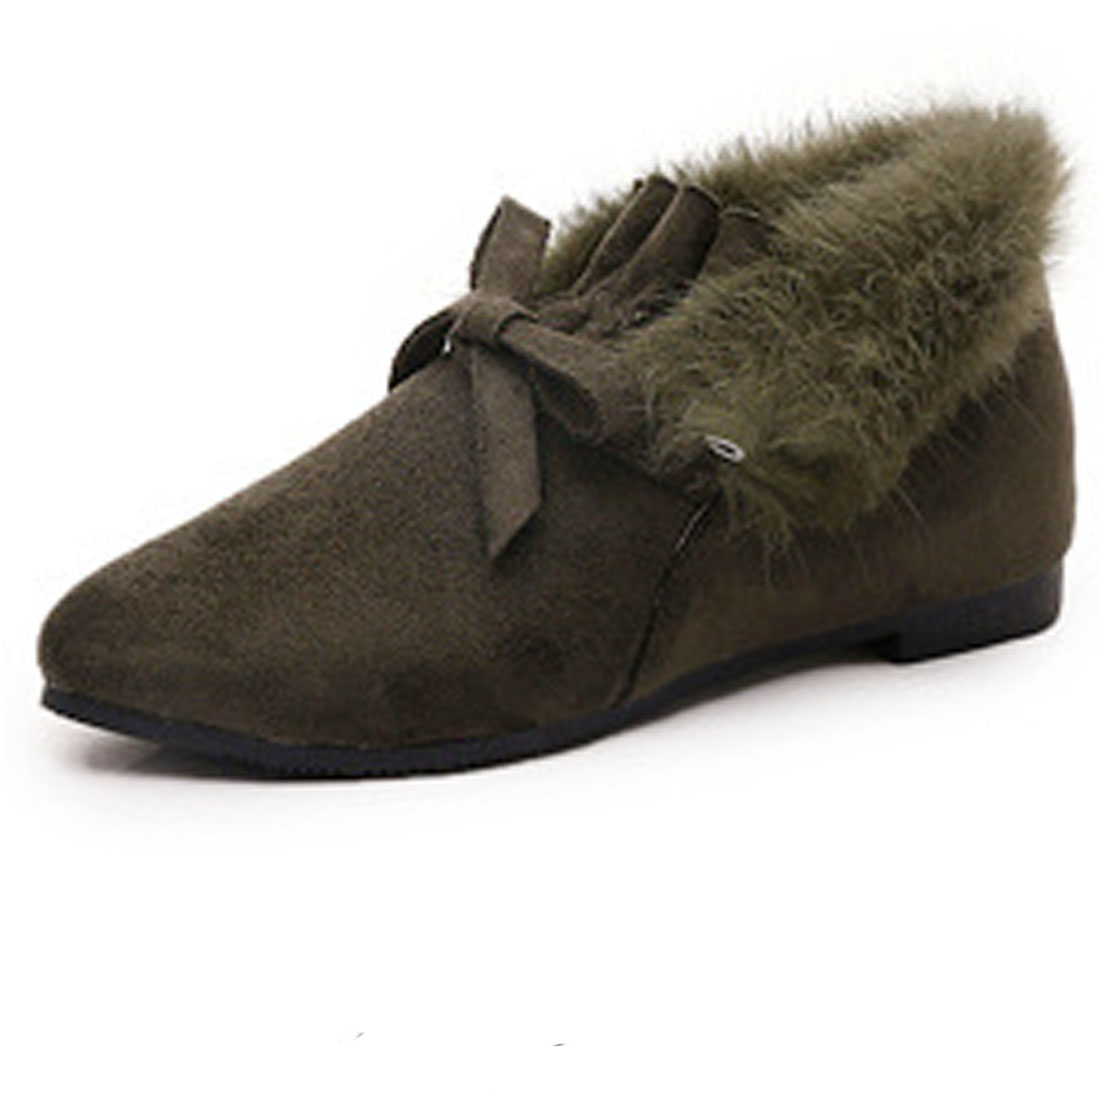 Fashion Women Winter Shoes Snow Boots Warm Faux Suede Pointed Toe Fur Line Loafers Flats Ladies Casual Slip On zapatos de mujer